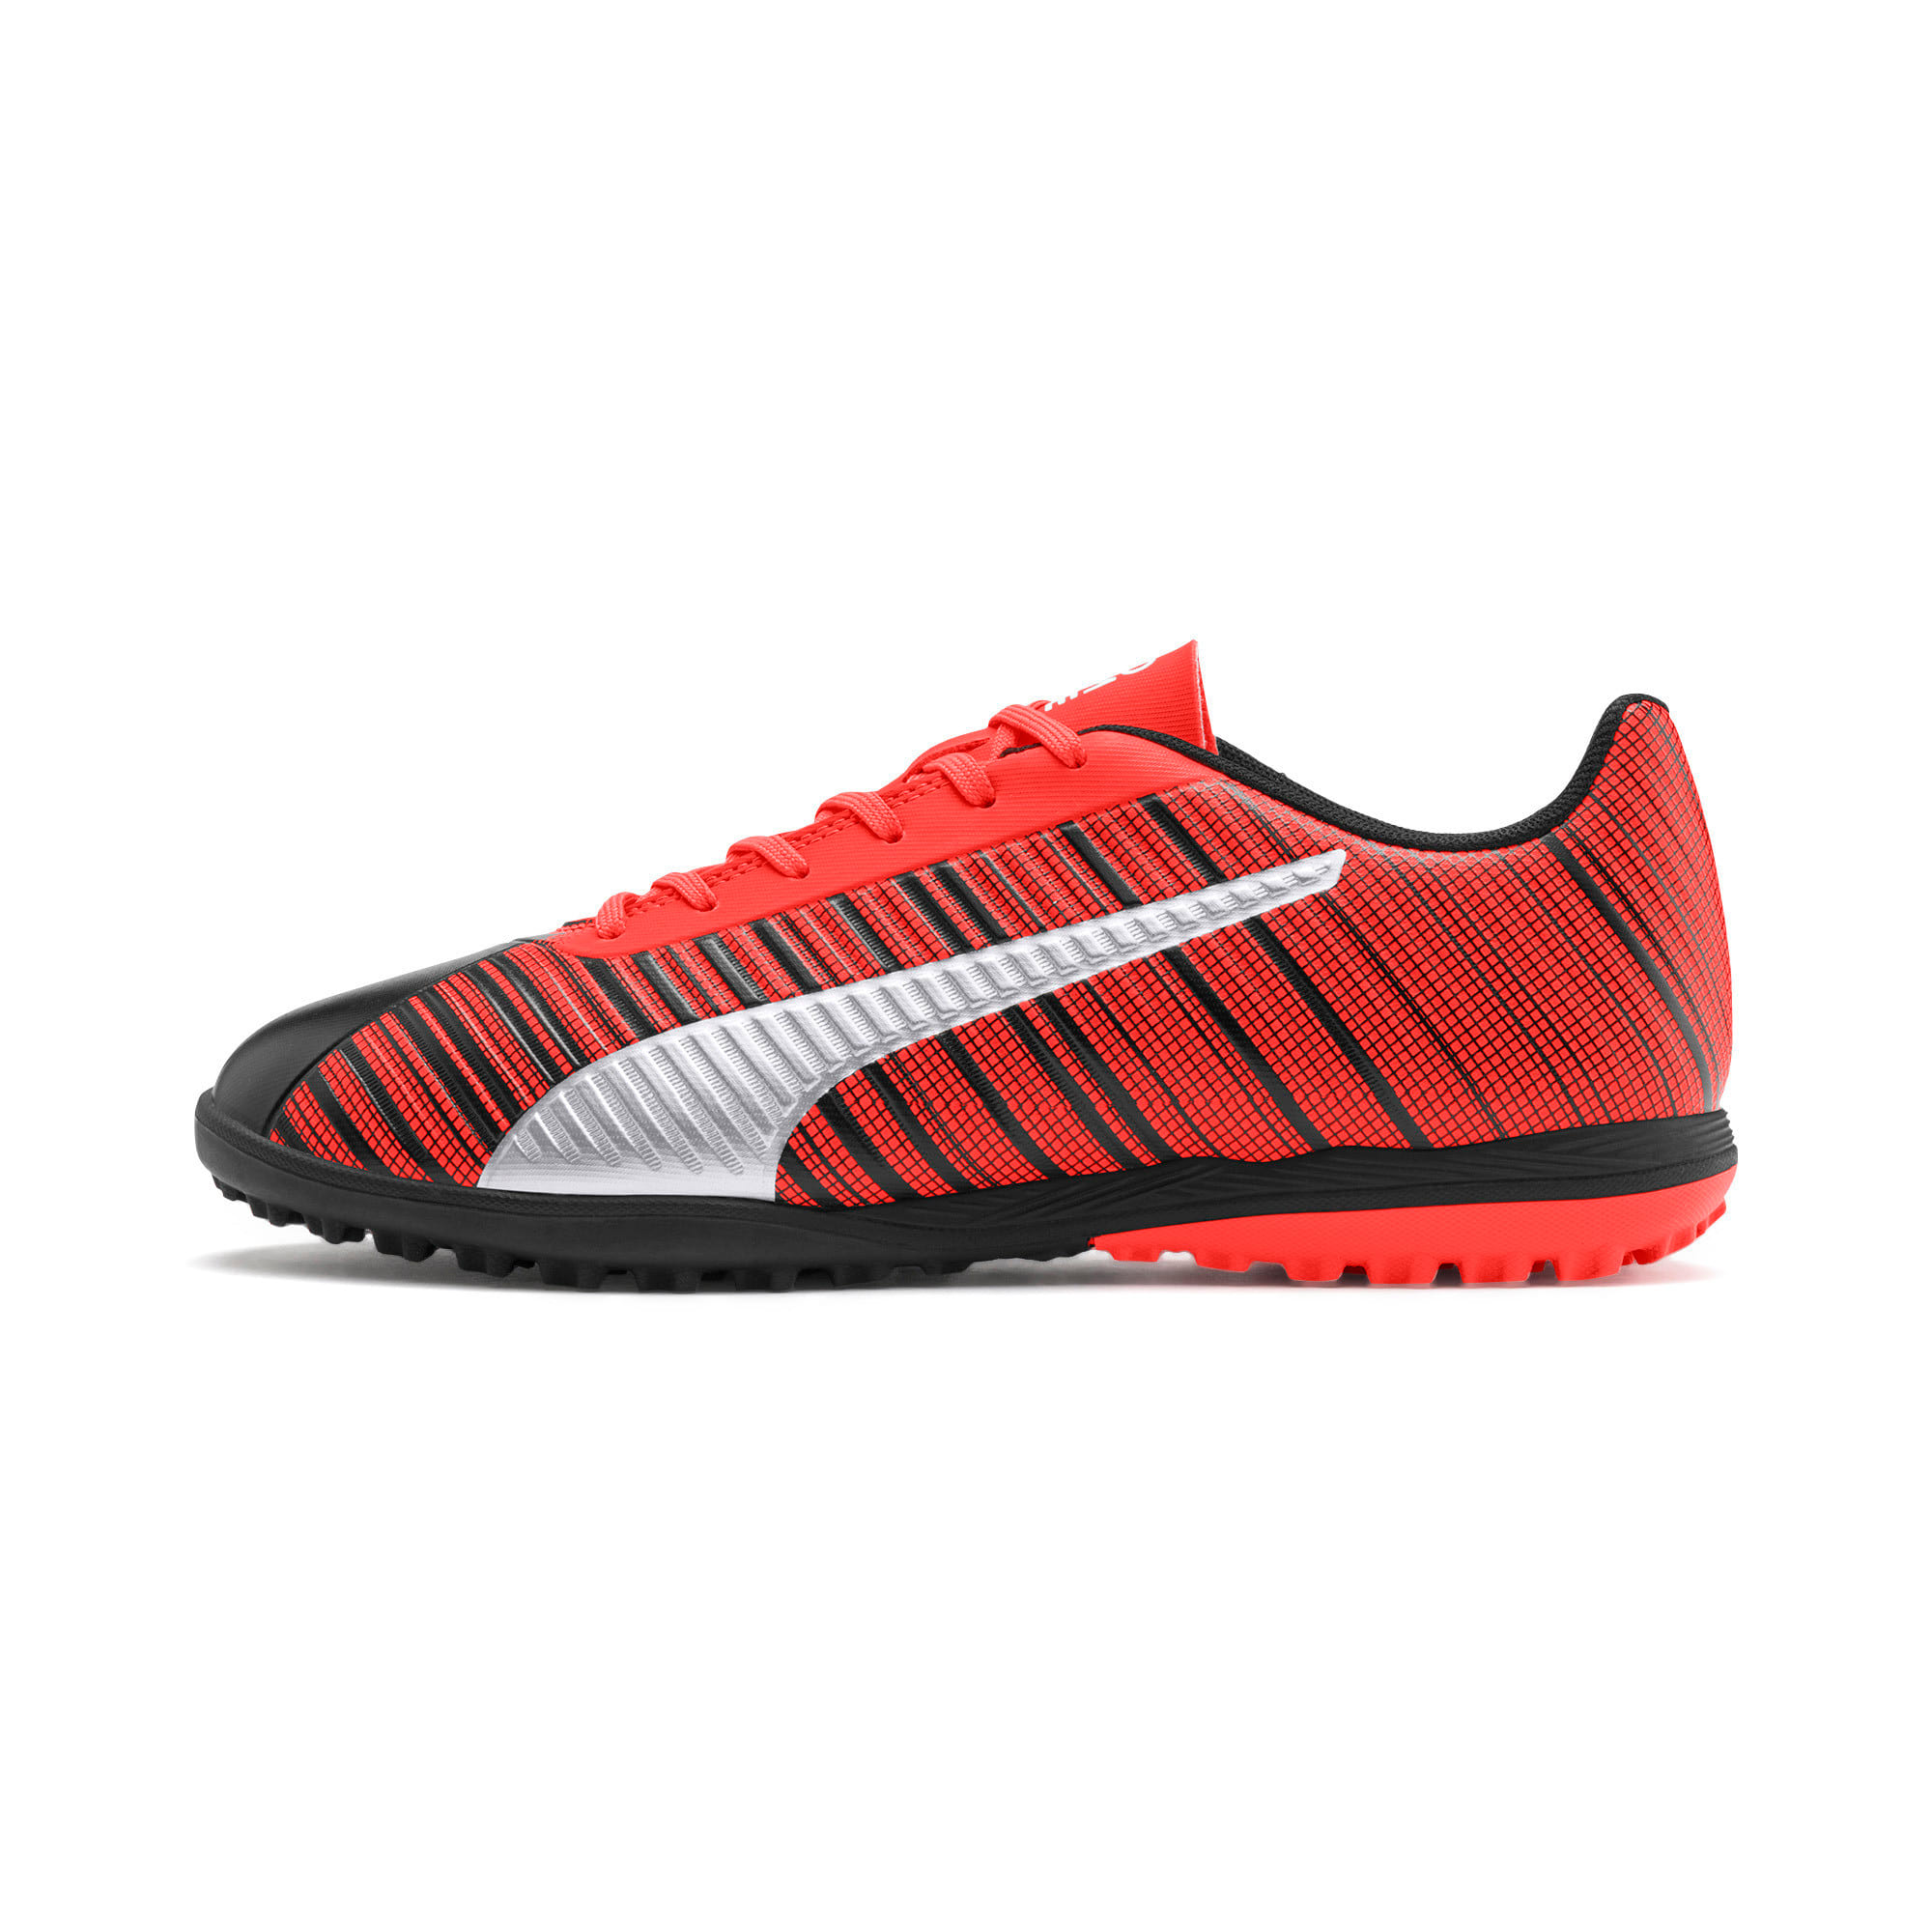 Thumbnail 1 of PUMA ONE 5.4 TT Herren Fußballschuhe, Black-Nrgy Red-Aged Silver, medium